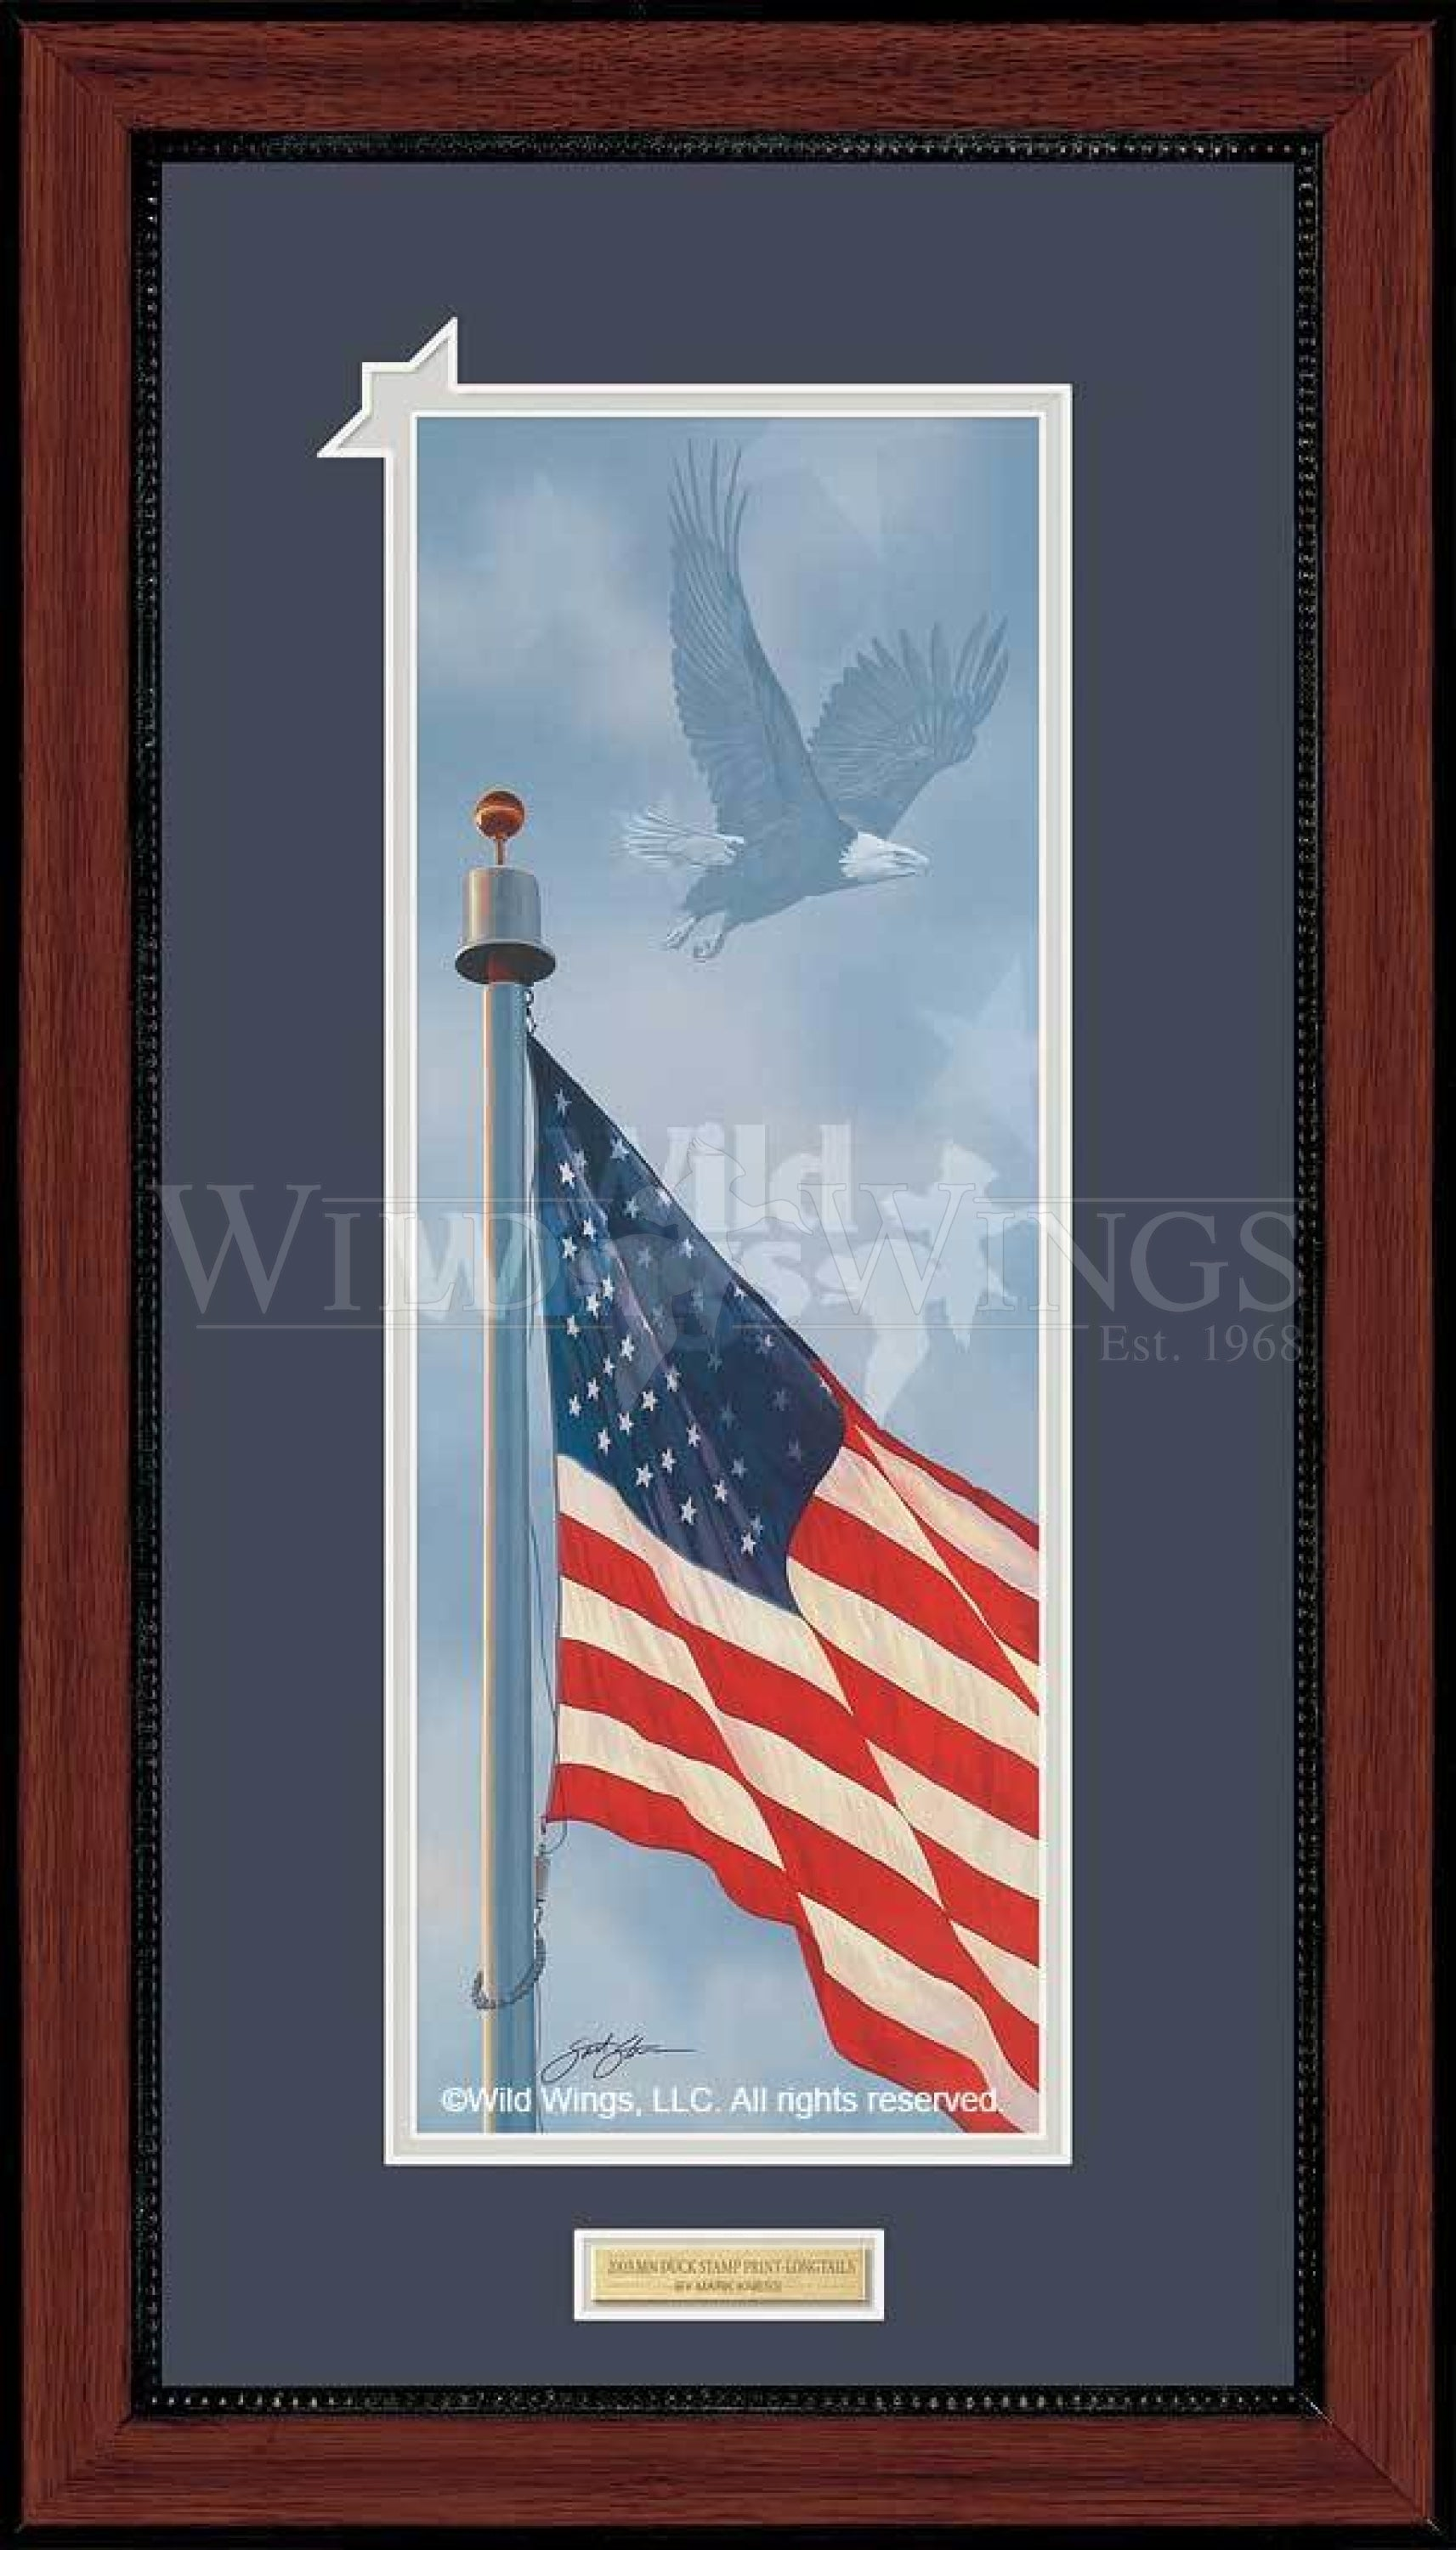 <I>Spirit Of America&mdash;bald Eagle</i> Framed Print<Br/>27H X 15W Art Collection